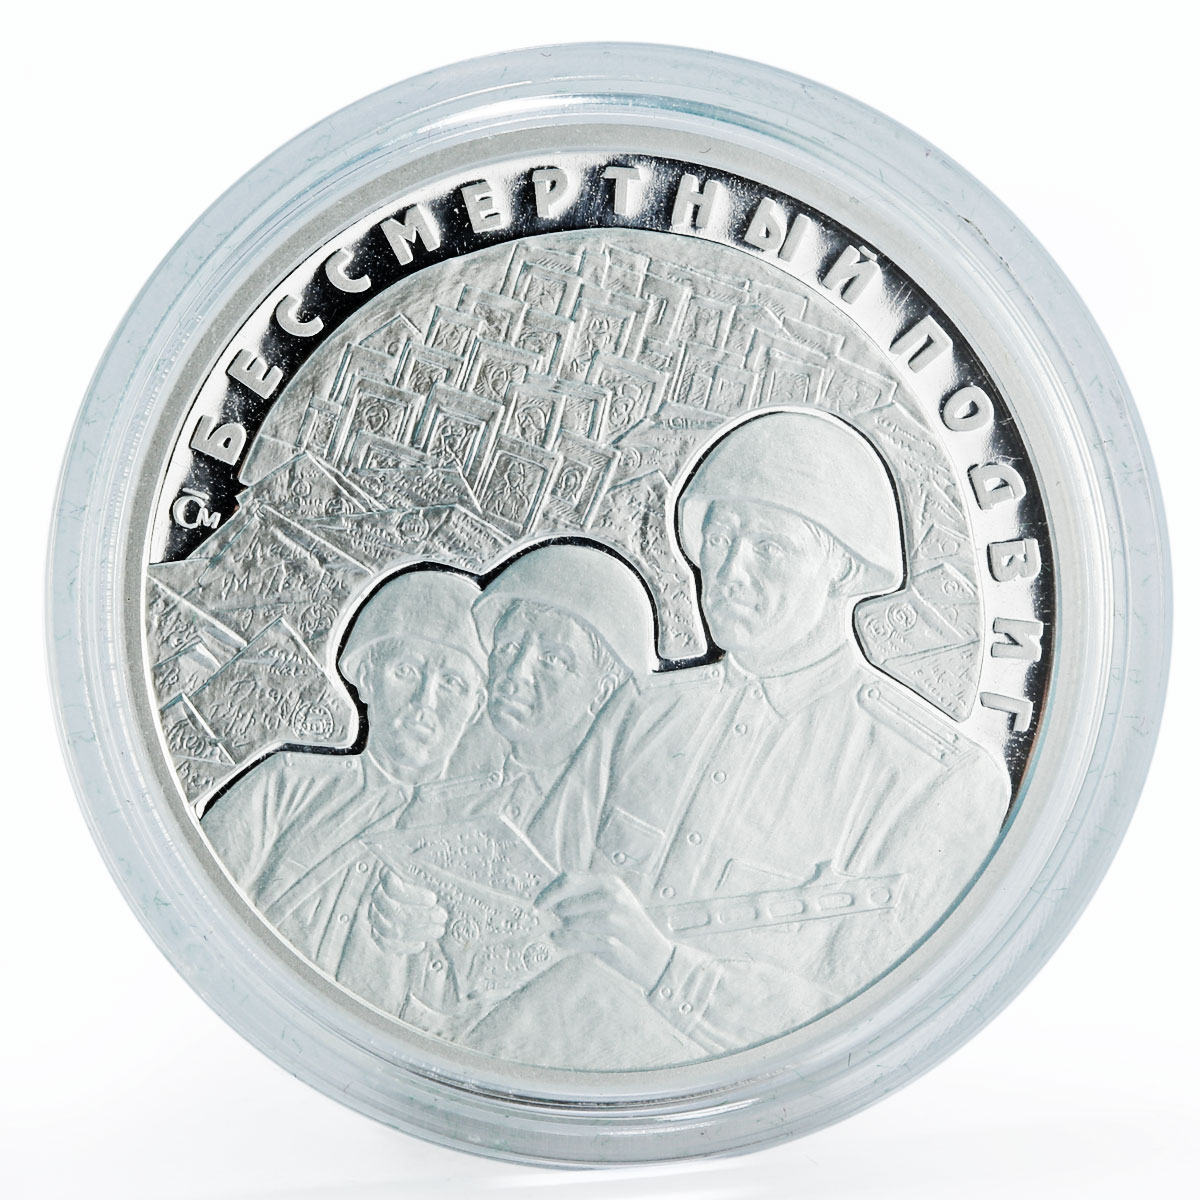 Cameroon 500 francs Immortal Feat Patriotic War soldiers  proof silver coin 2019